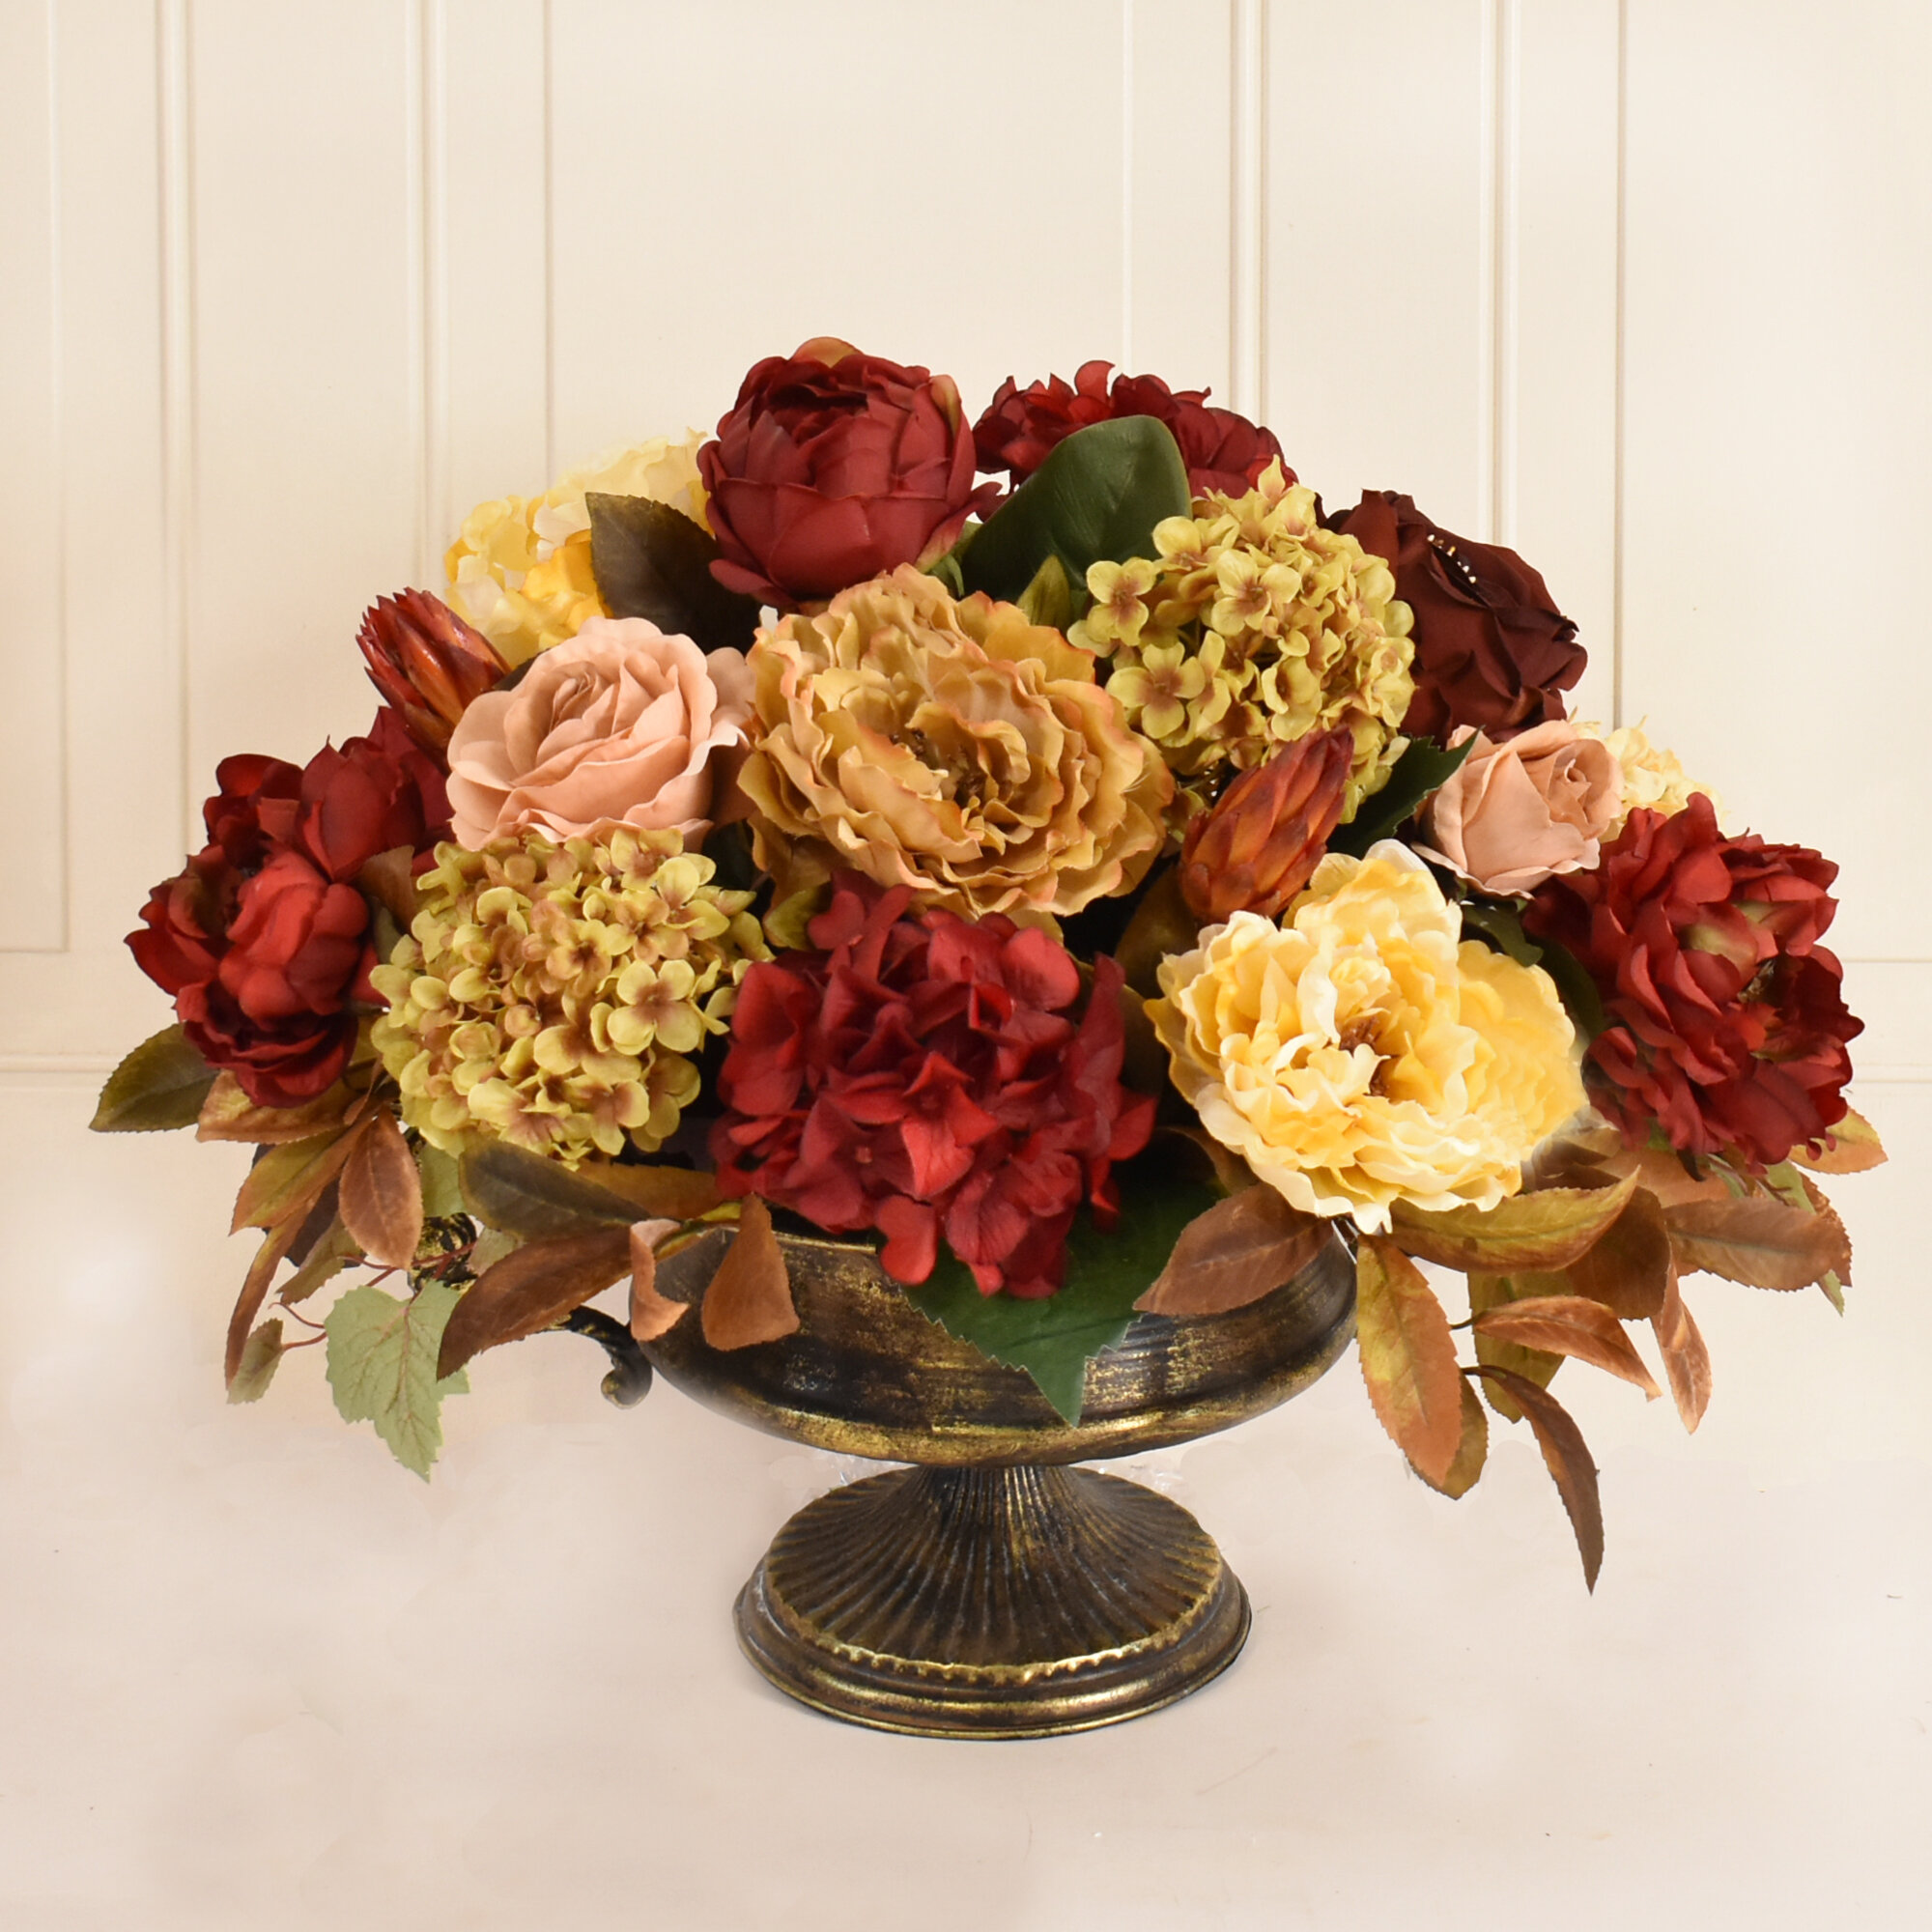 Canora grey large burgundy and gold silk flower floral arrangement canora grey large burgundy and gold silk flower floral arrangement wayfair mightylinksfo